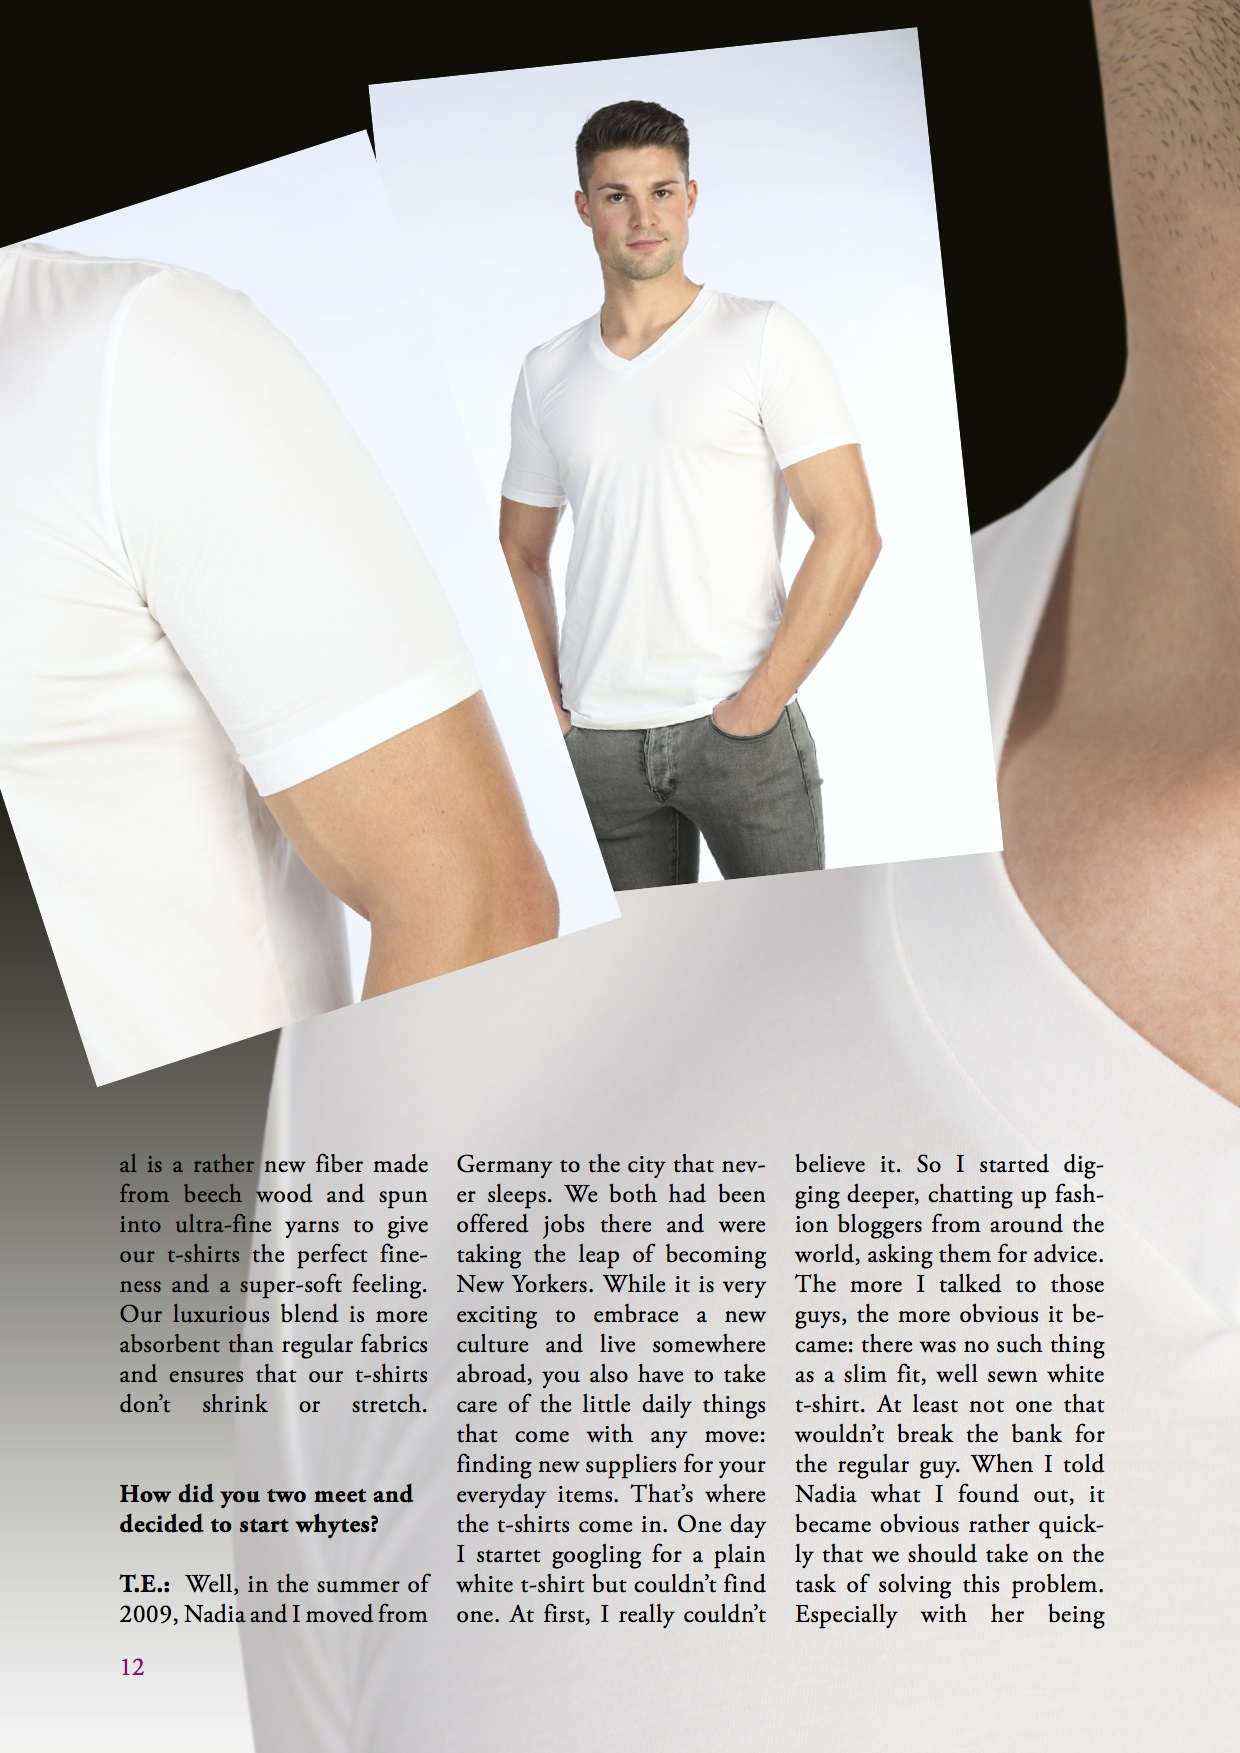 whytes_perfect_white_t-shirt_inCompany_interview_2.jpg